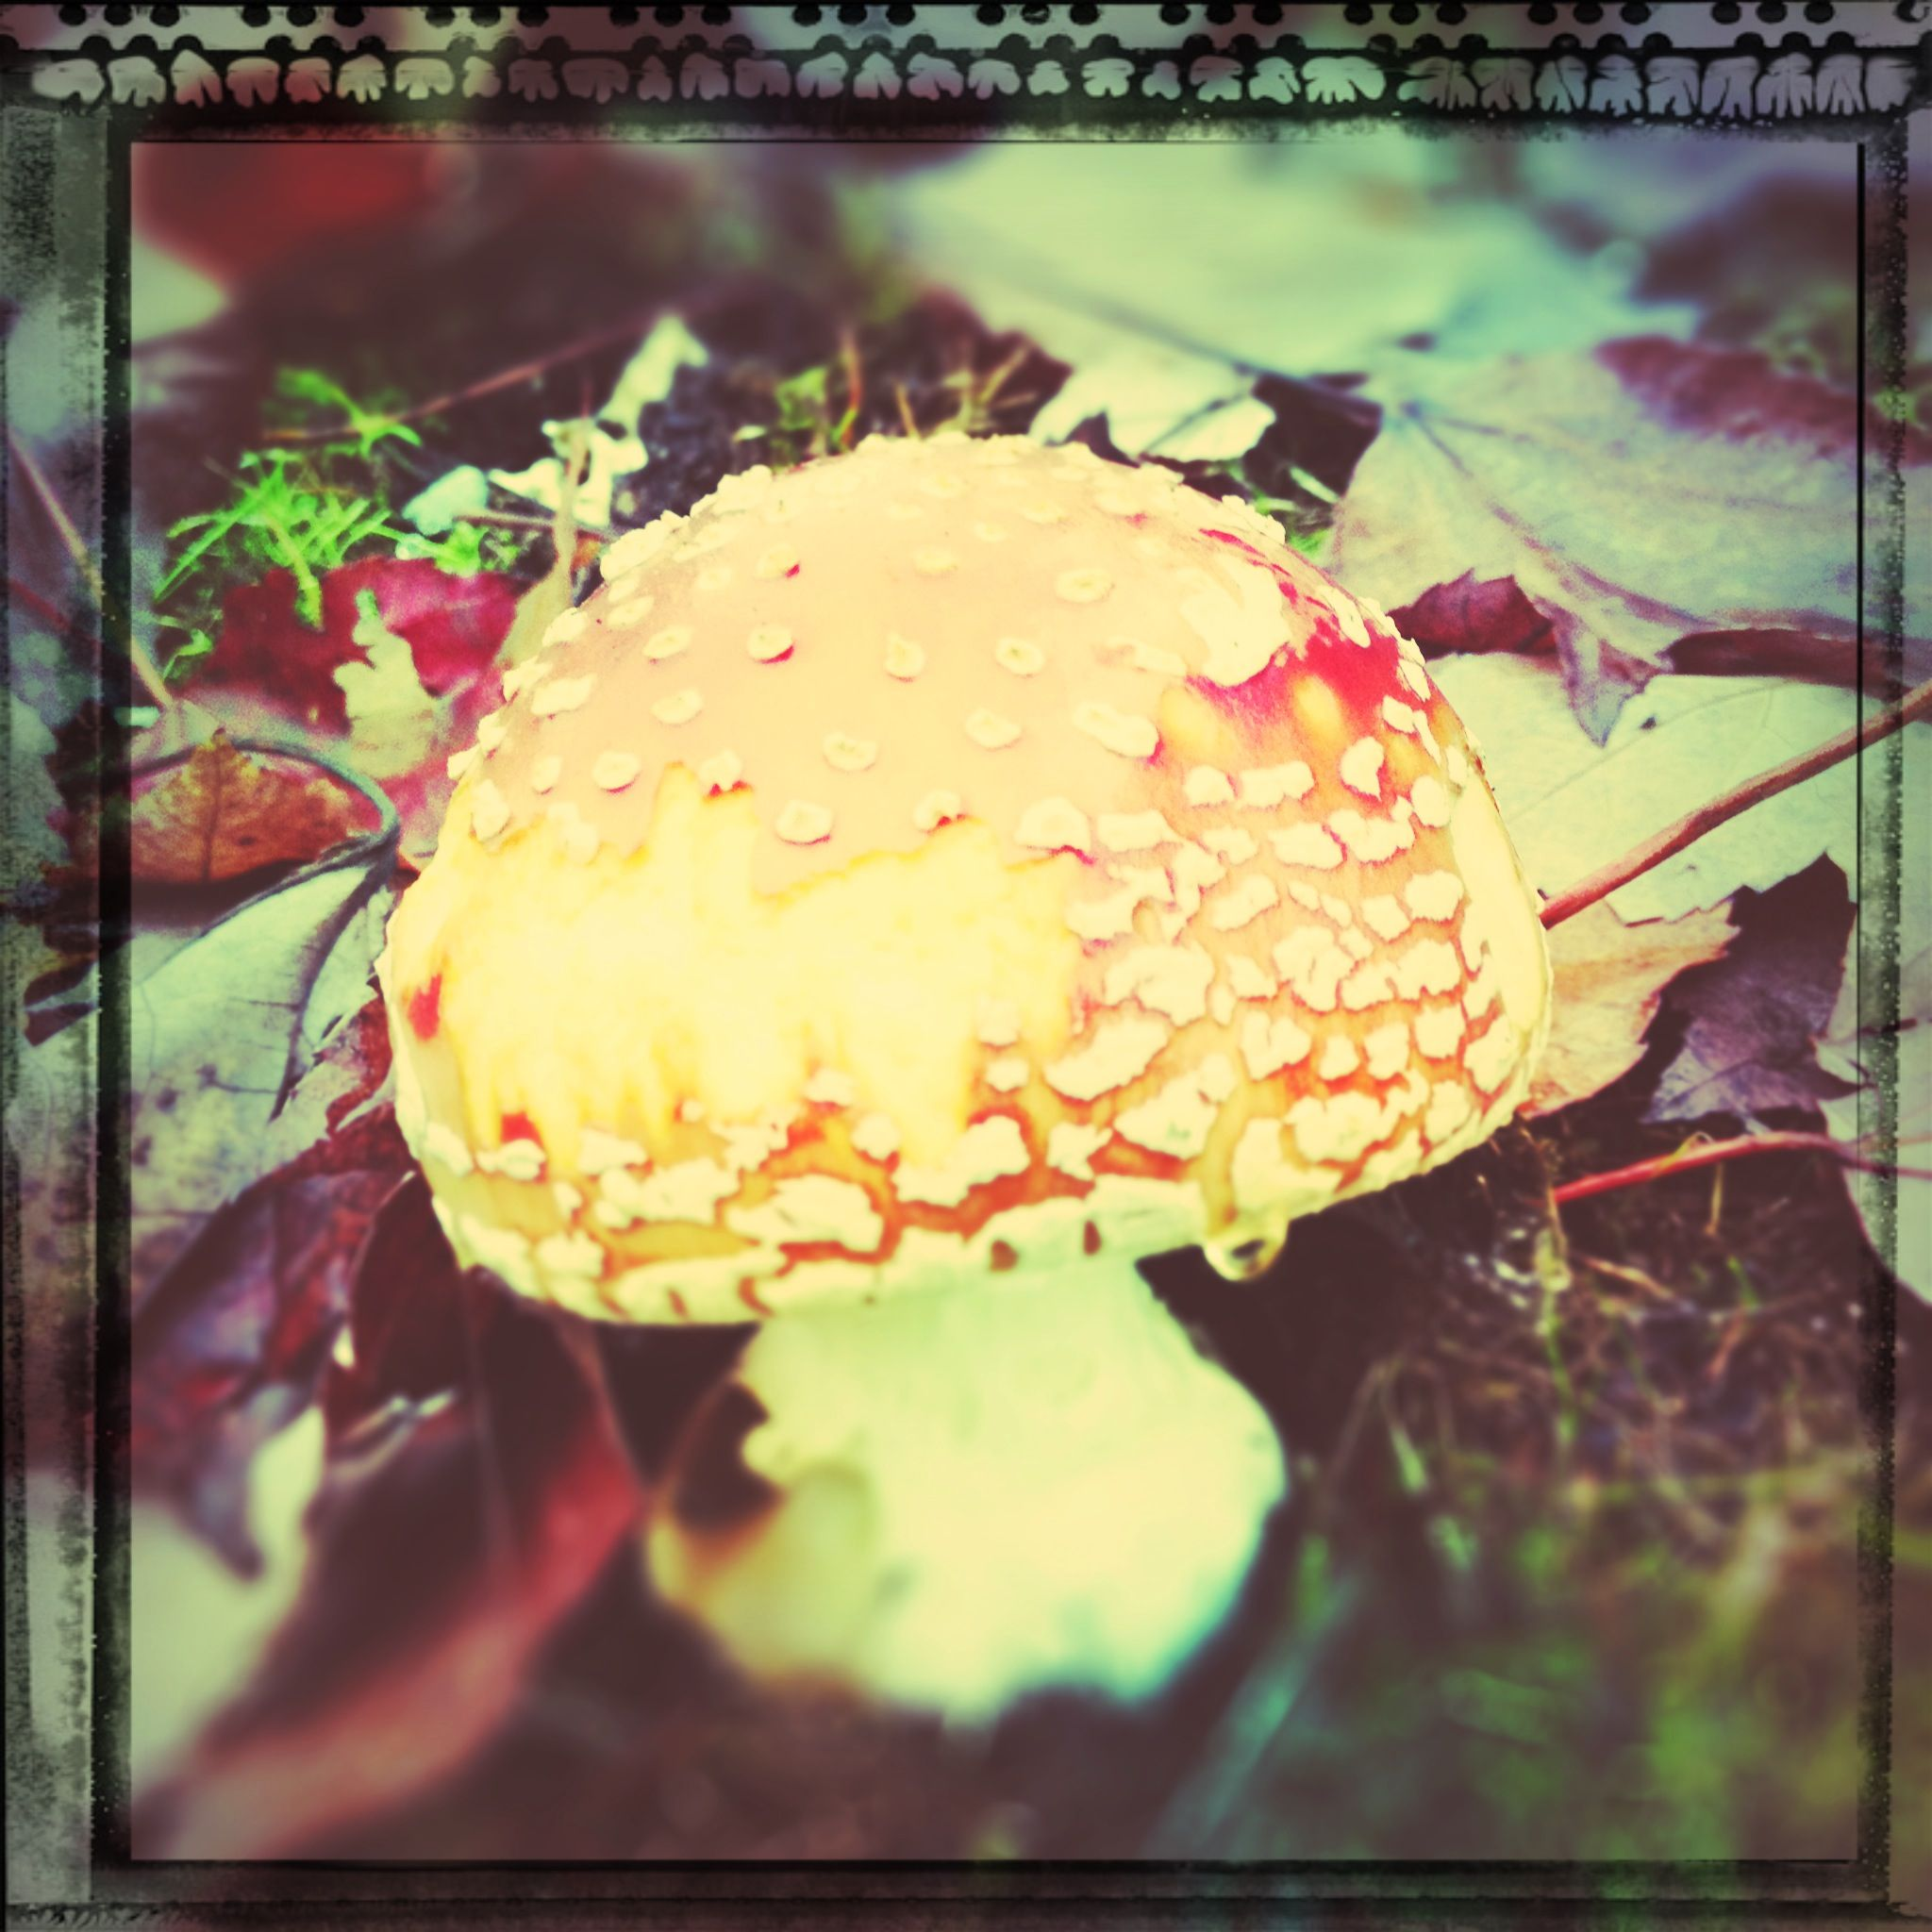 Used my tadaa app for this awesome mushroom pic.